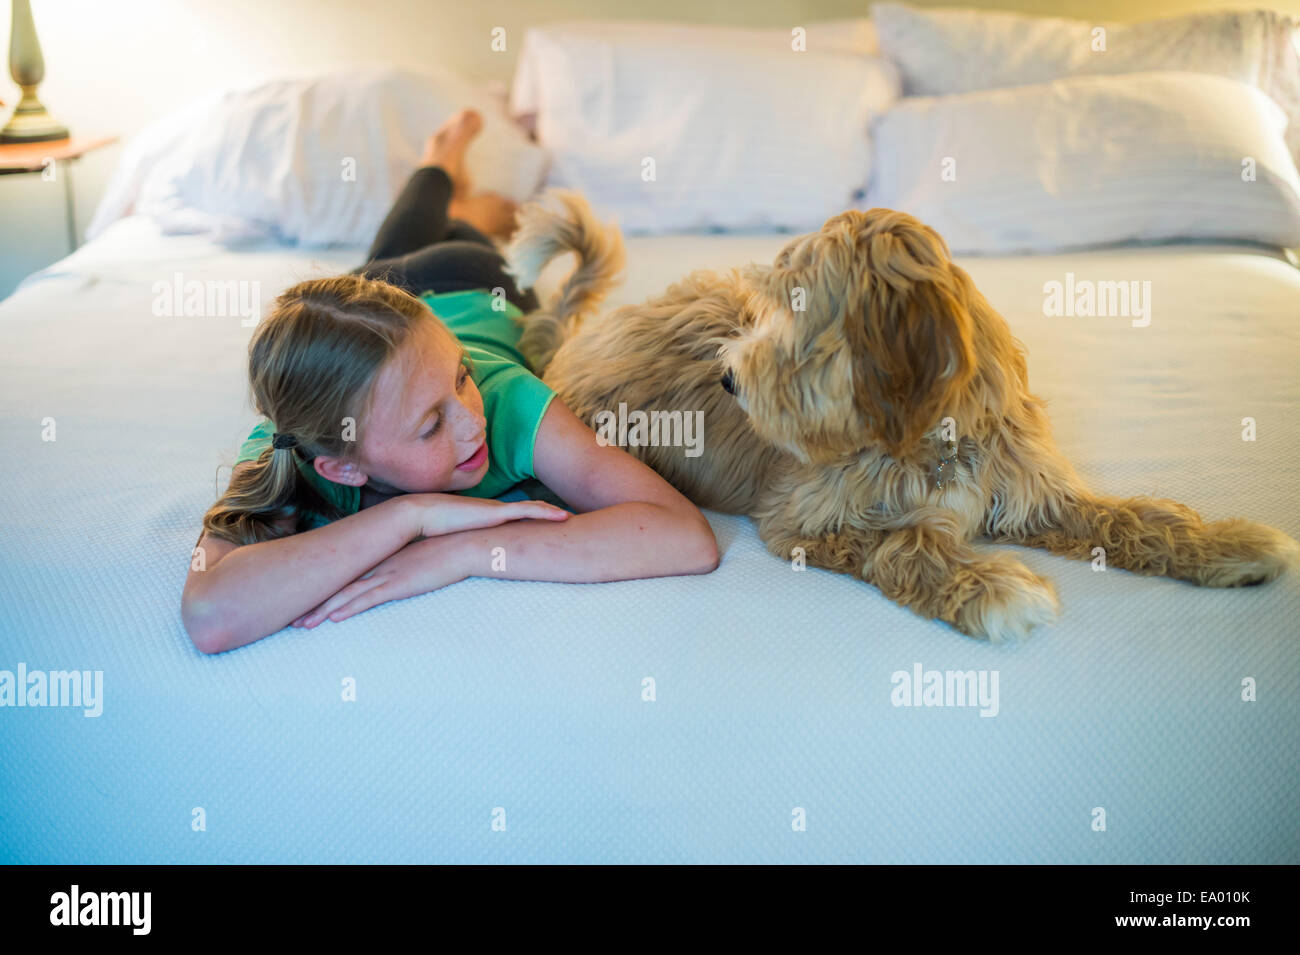 Young girl lying on bed next to dog - Stock Image